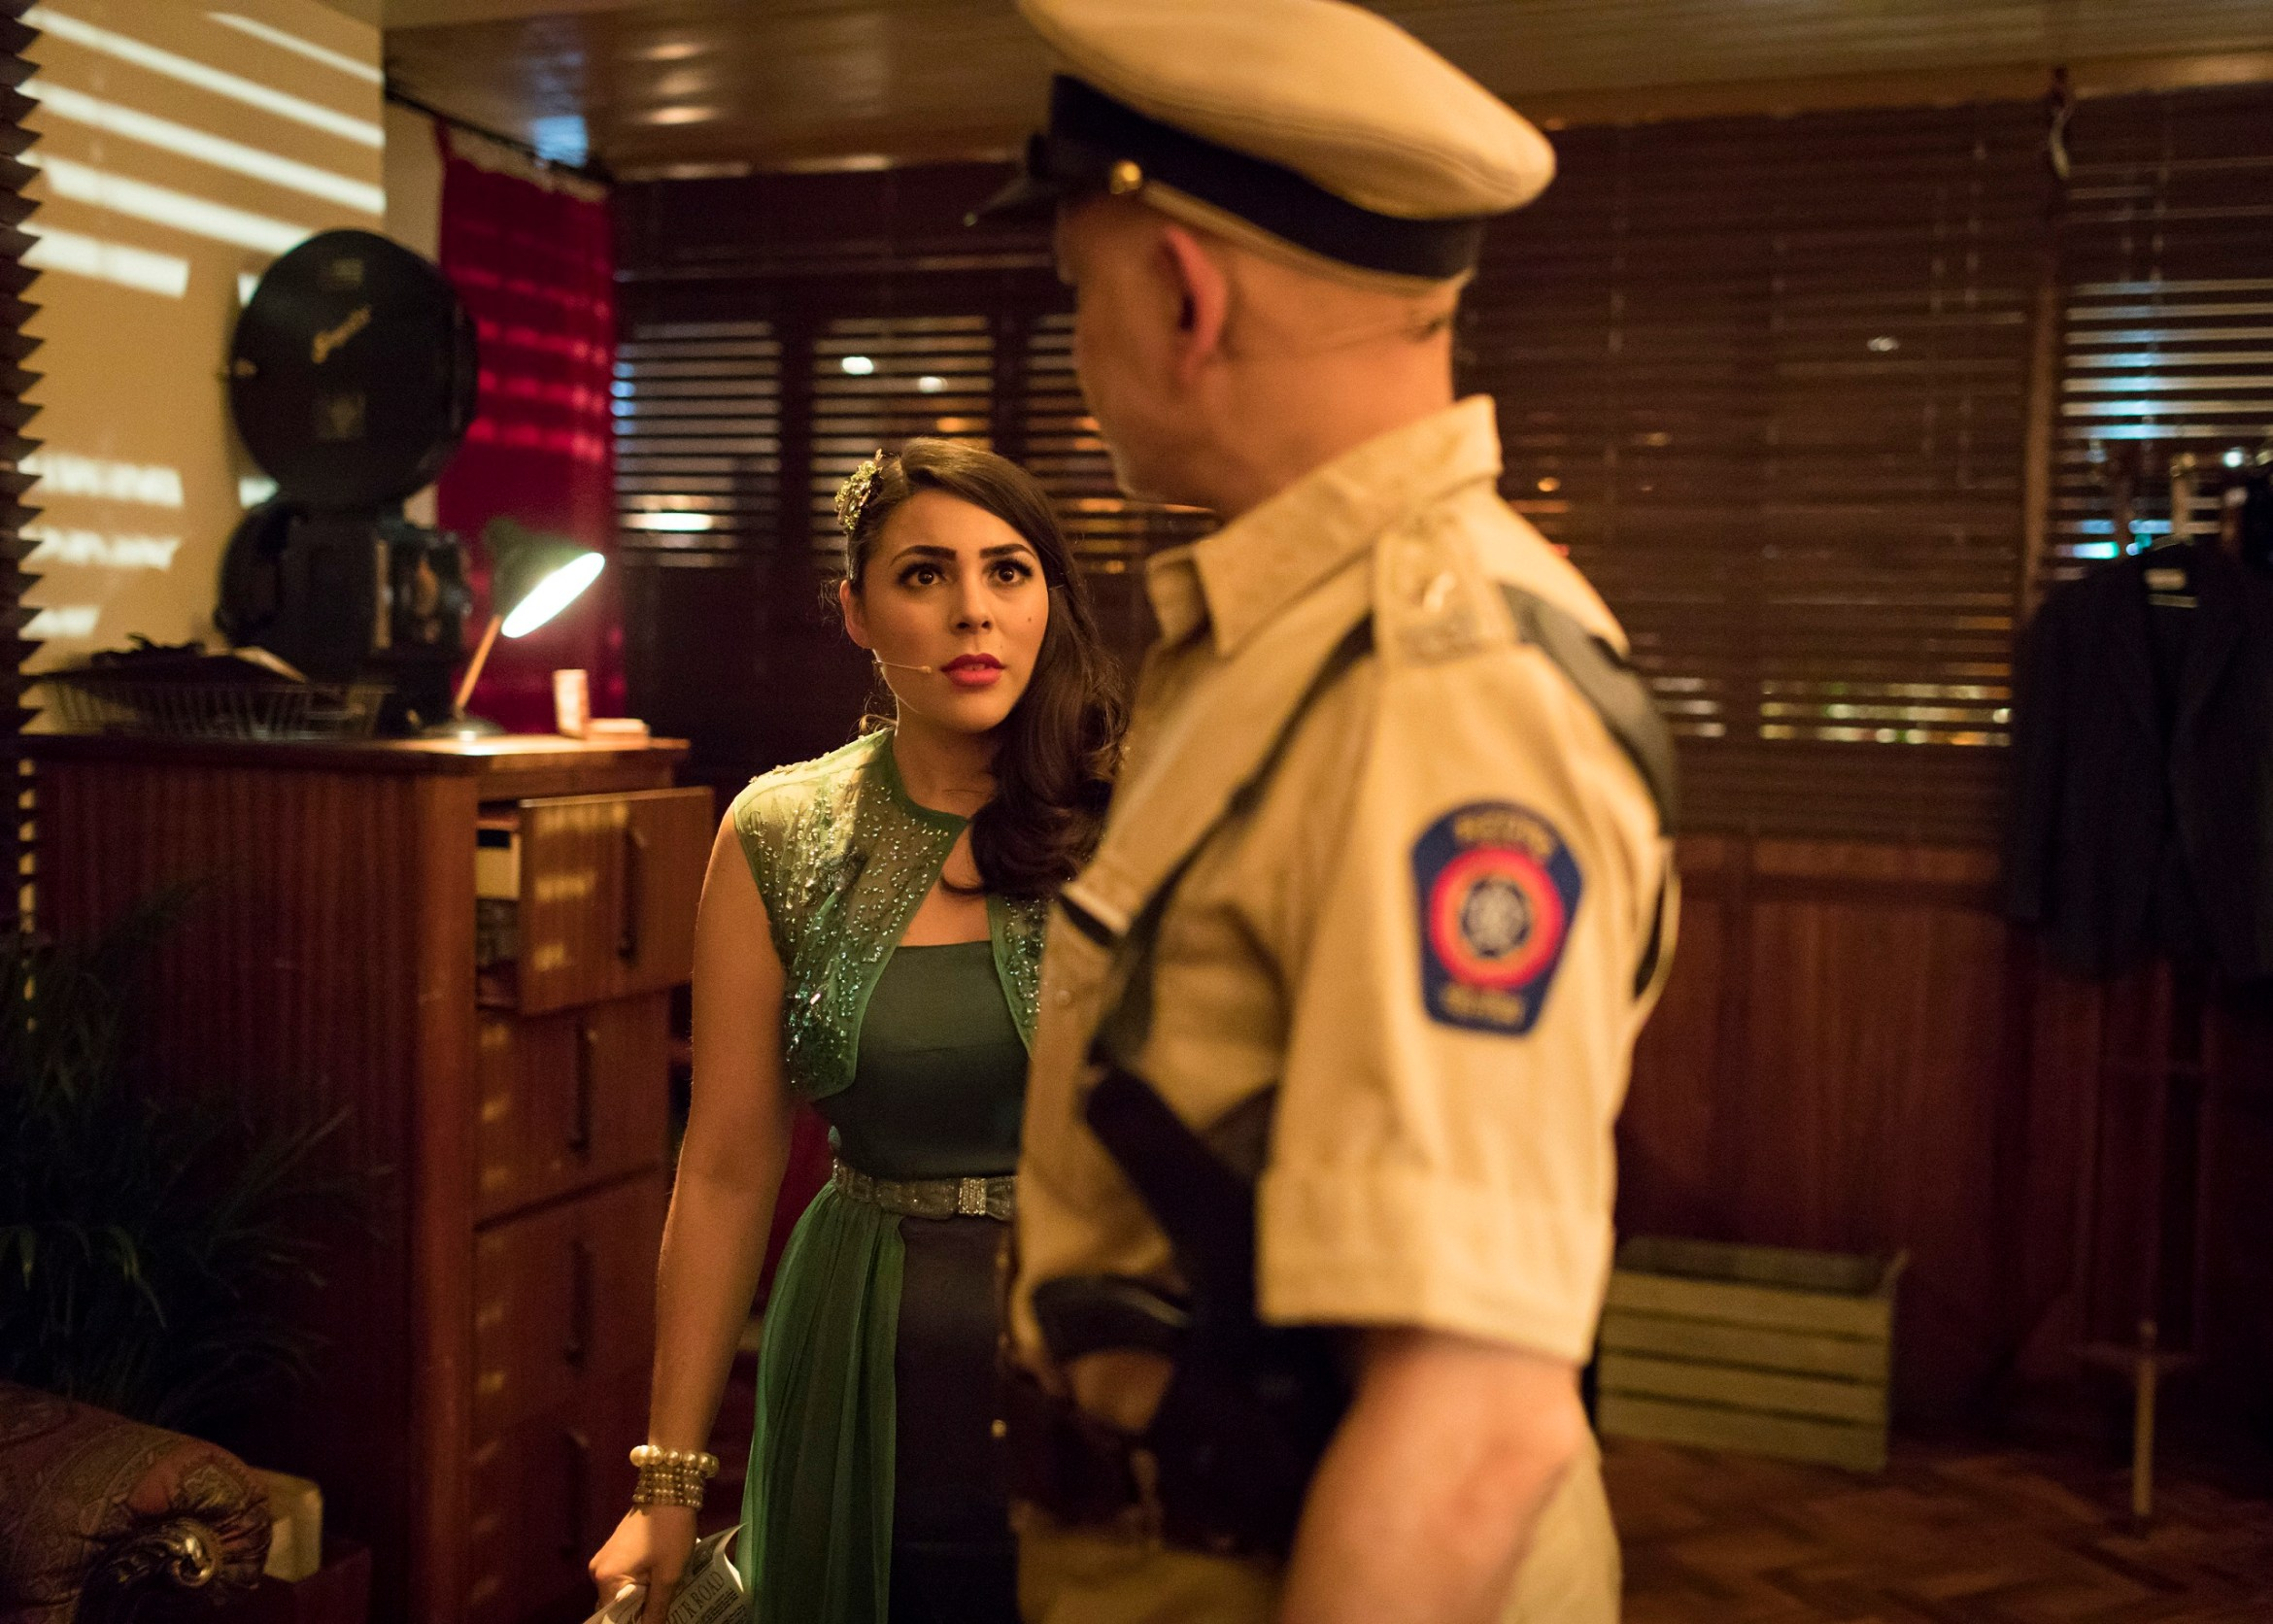 Sophie-Khan-Levy-as-Ursula-and-Harmage-Singh-Kalirai-as-the-Inspector-in-Night-at-the-Bombay-Roxy_Photo-Credit-Helen-Maybanks.JPG